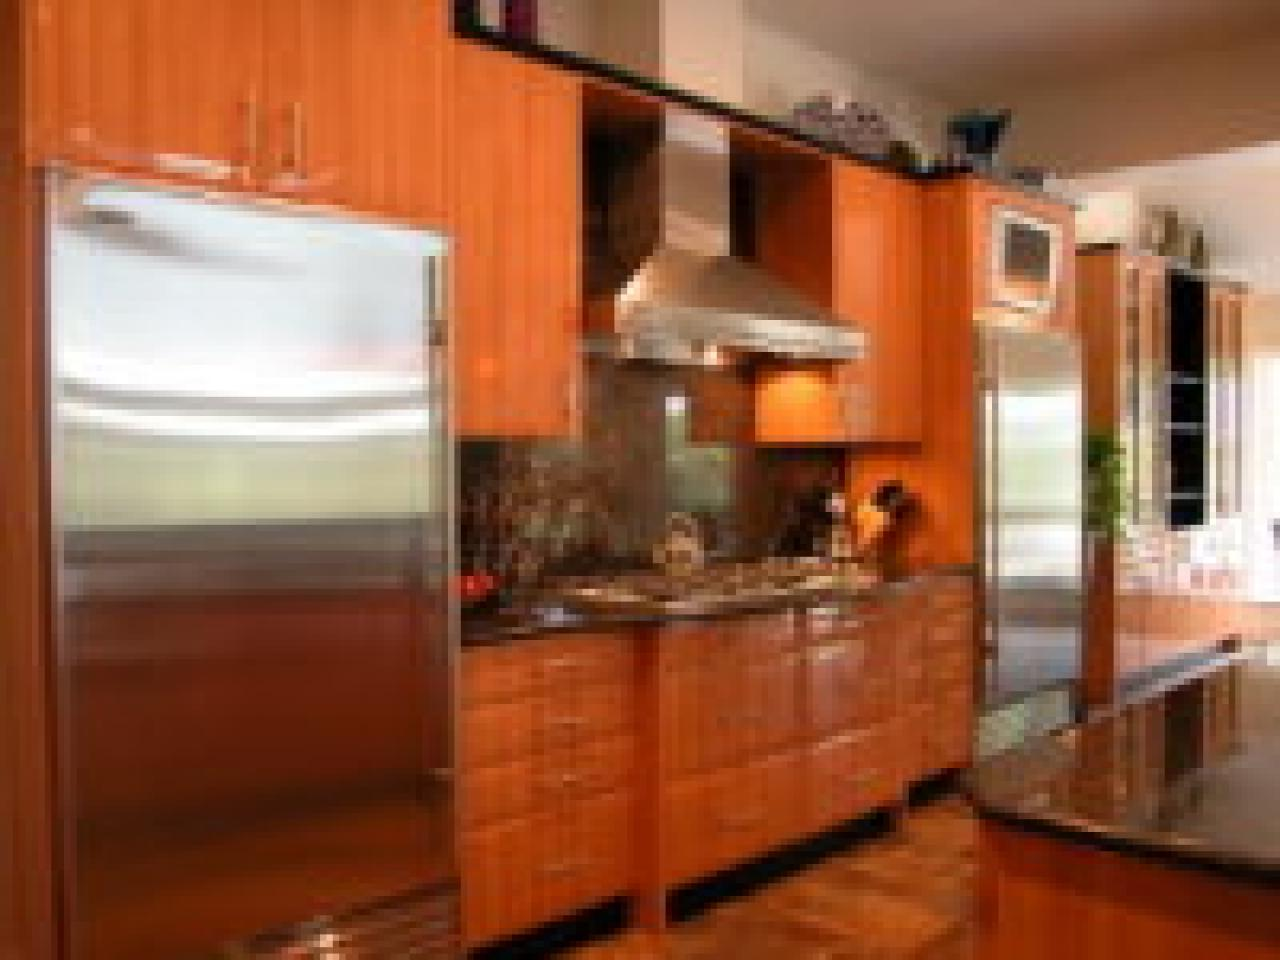 Designing With Or Around Stainless Steel Hgtv